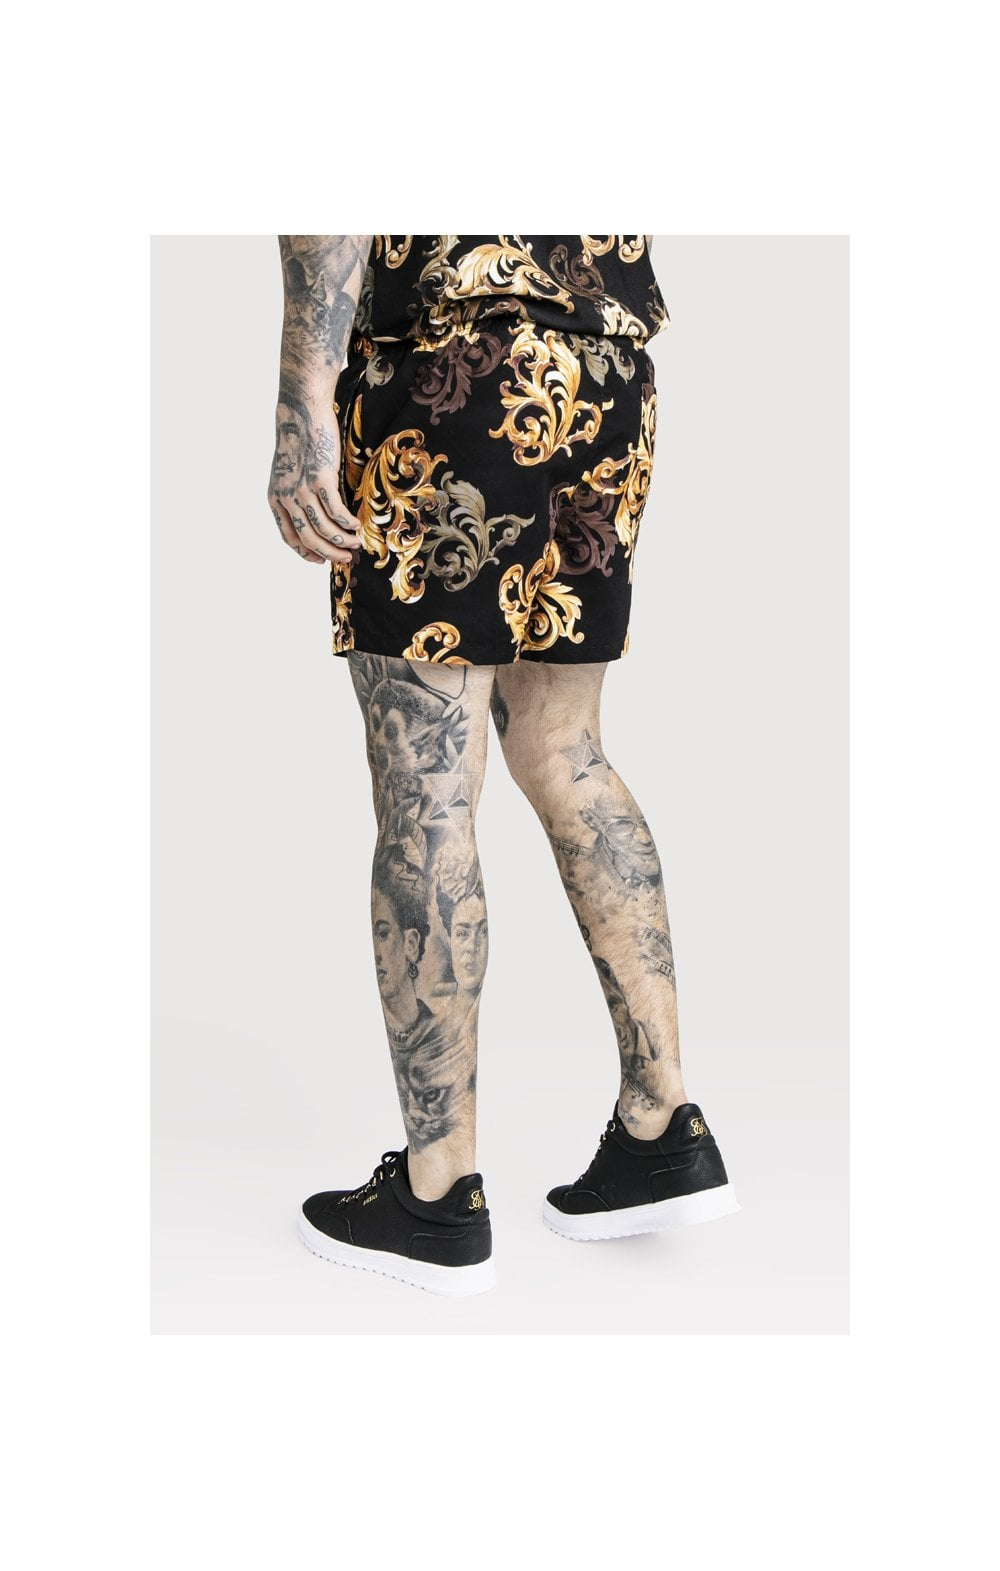 SikSilk x Dani Alves Swim Shorts - Black & Gold (3)